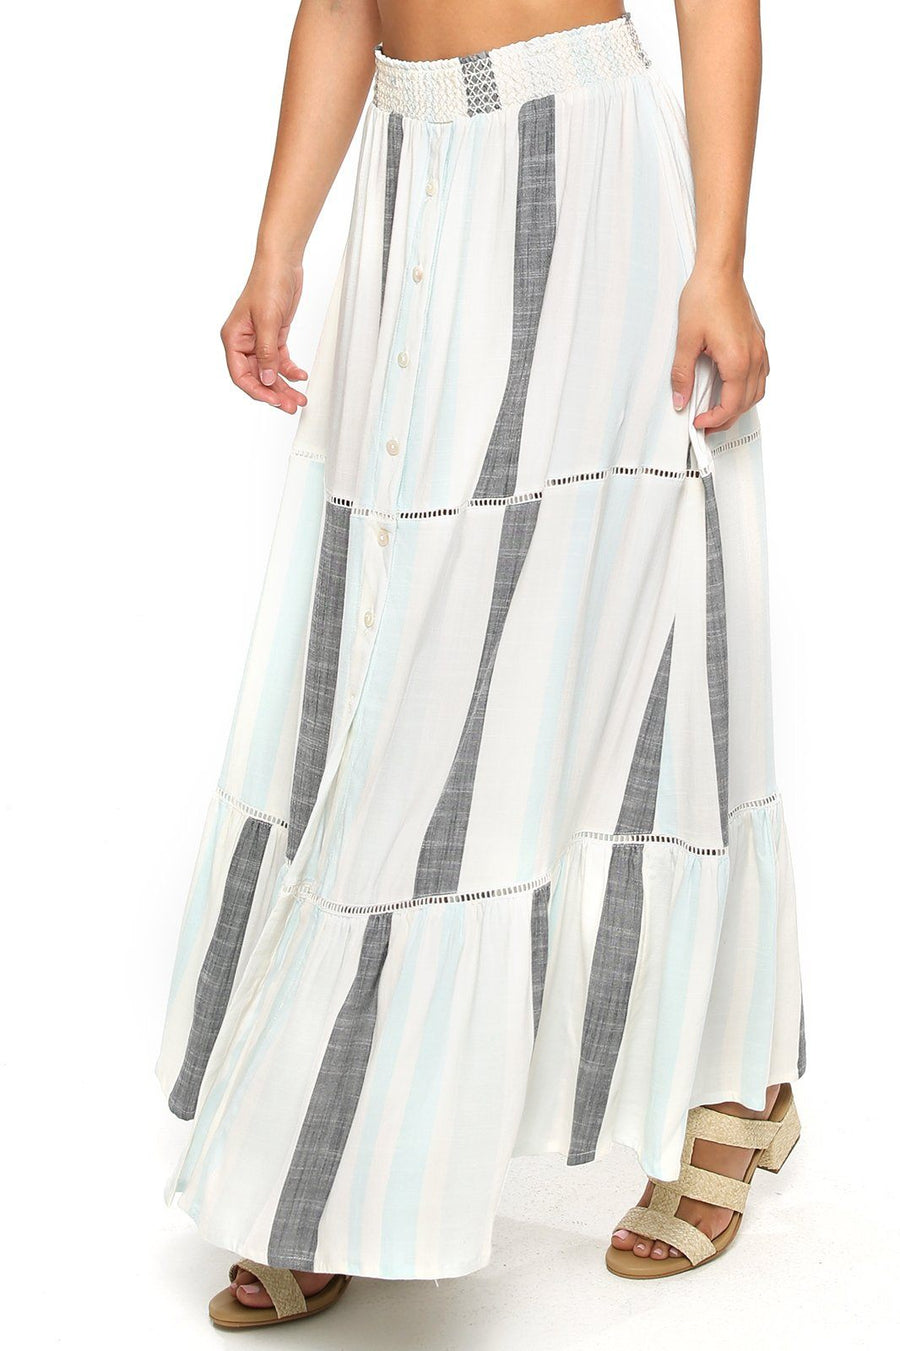 Opal Smocking Maxi Skirt - Hampton Stripe - Shore